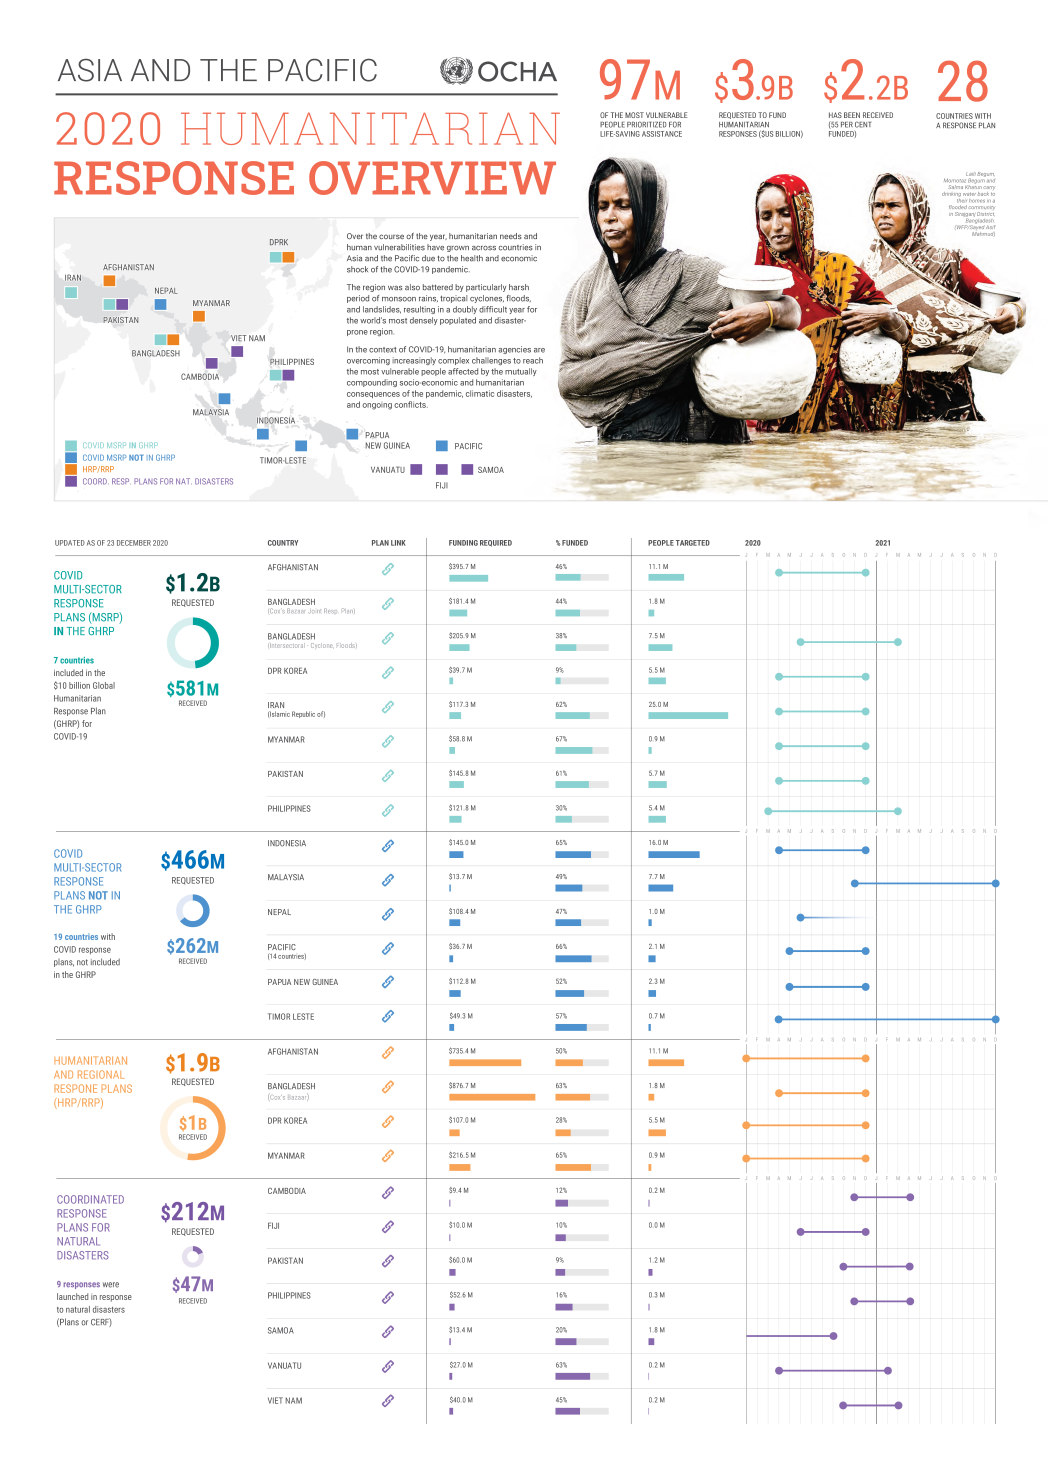 2020 Asia Pacific Humanitarian Response Overview